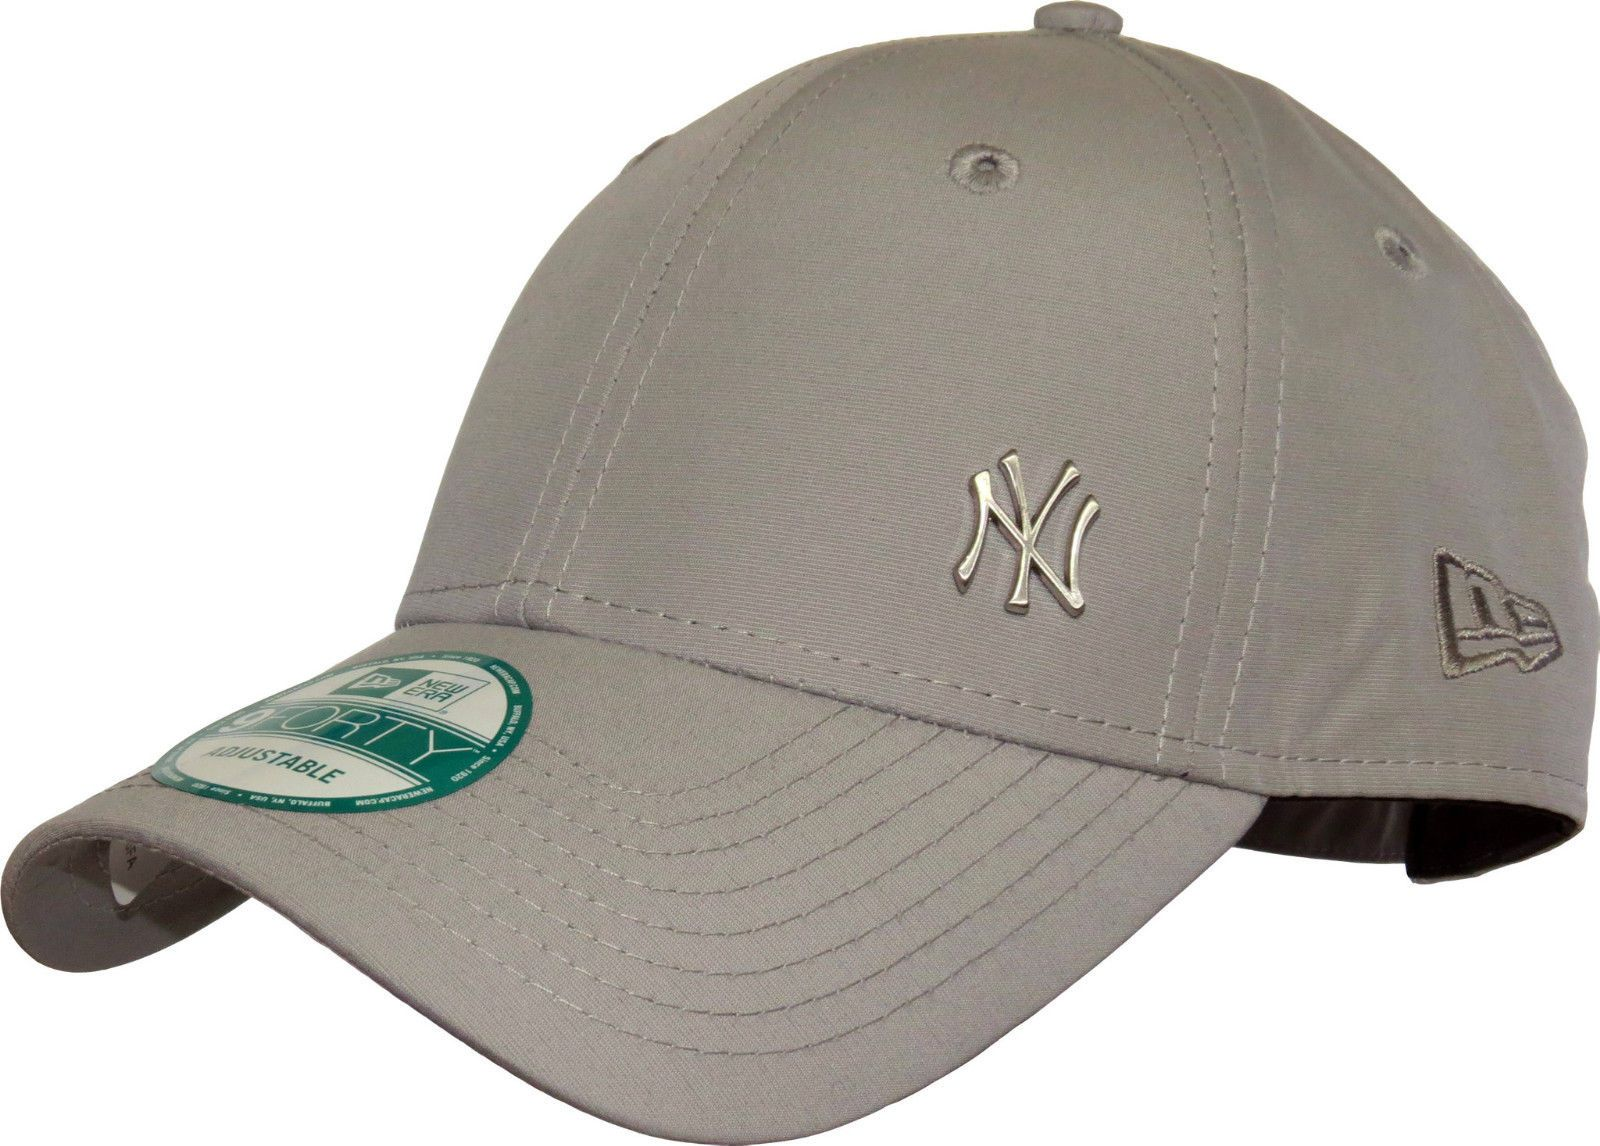 NEW ERA MENS 9FORTY BASEBALL CAP.NEW YORK YANKEES FLAWLESS GREY CURVED PEAK  HAT 098ce30f269